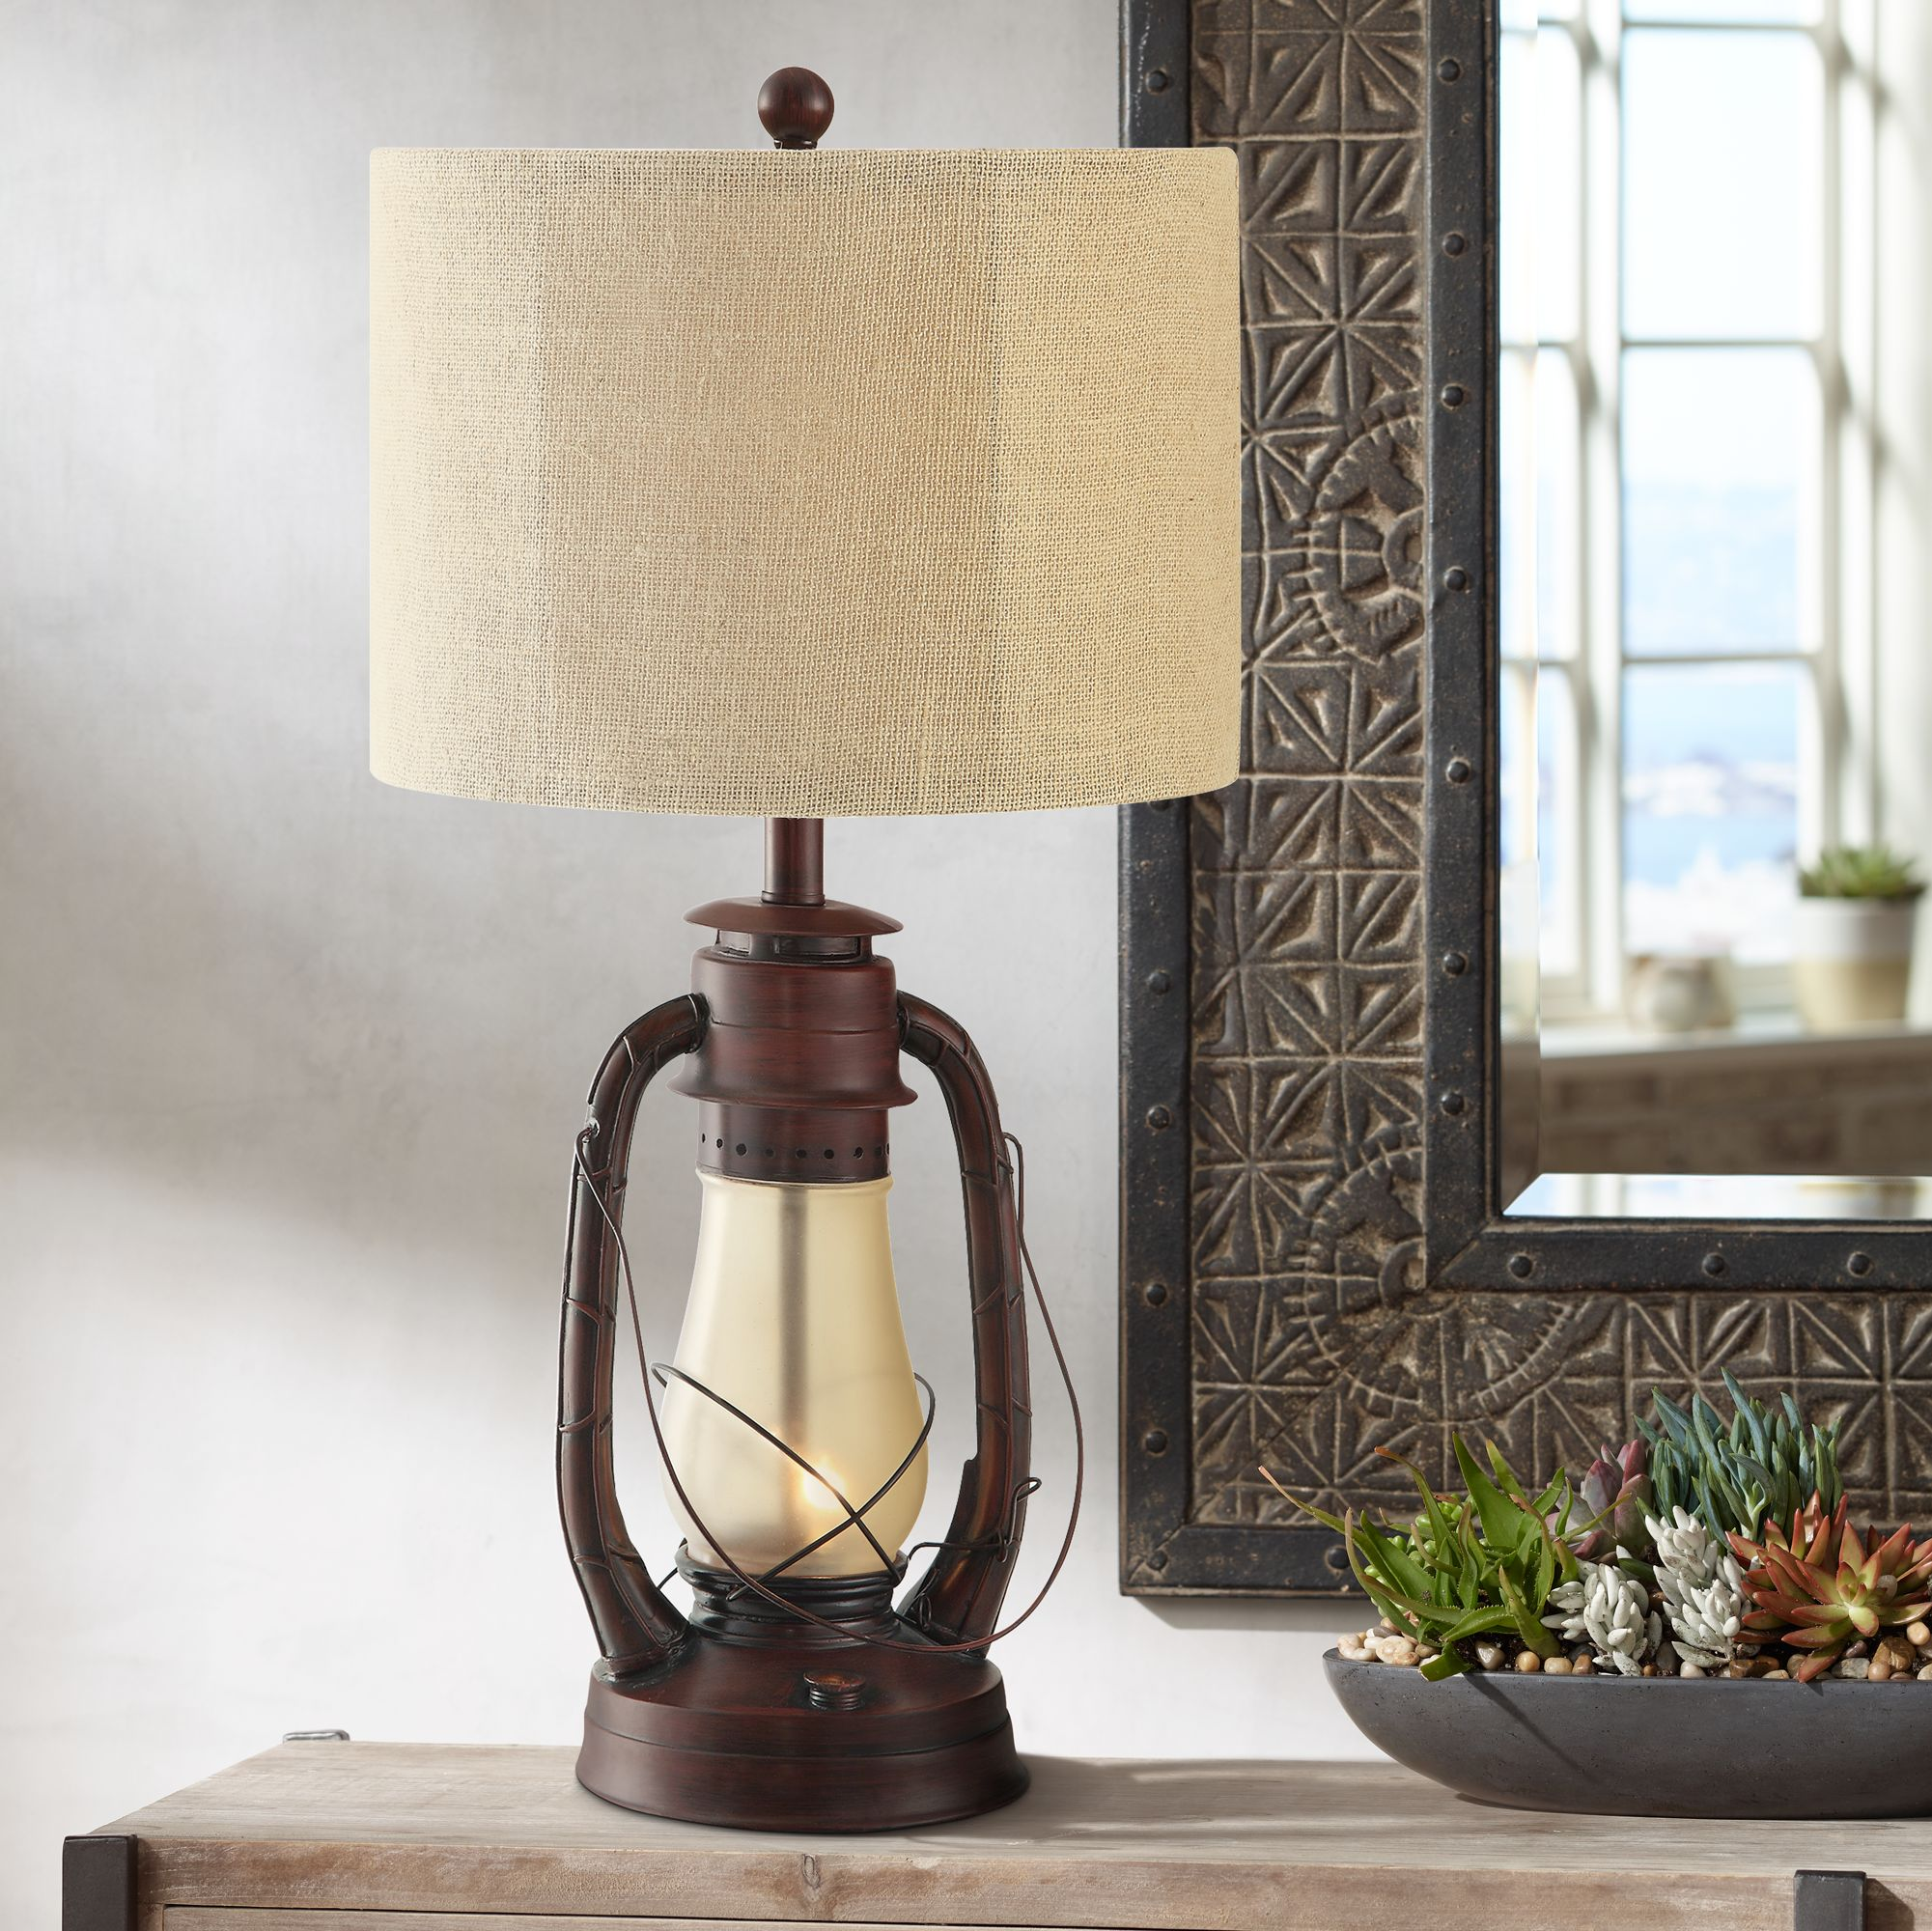 Superb Crestview Rustic Red Lantern Table Lamp With Nightlight